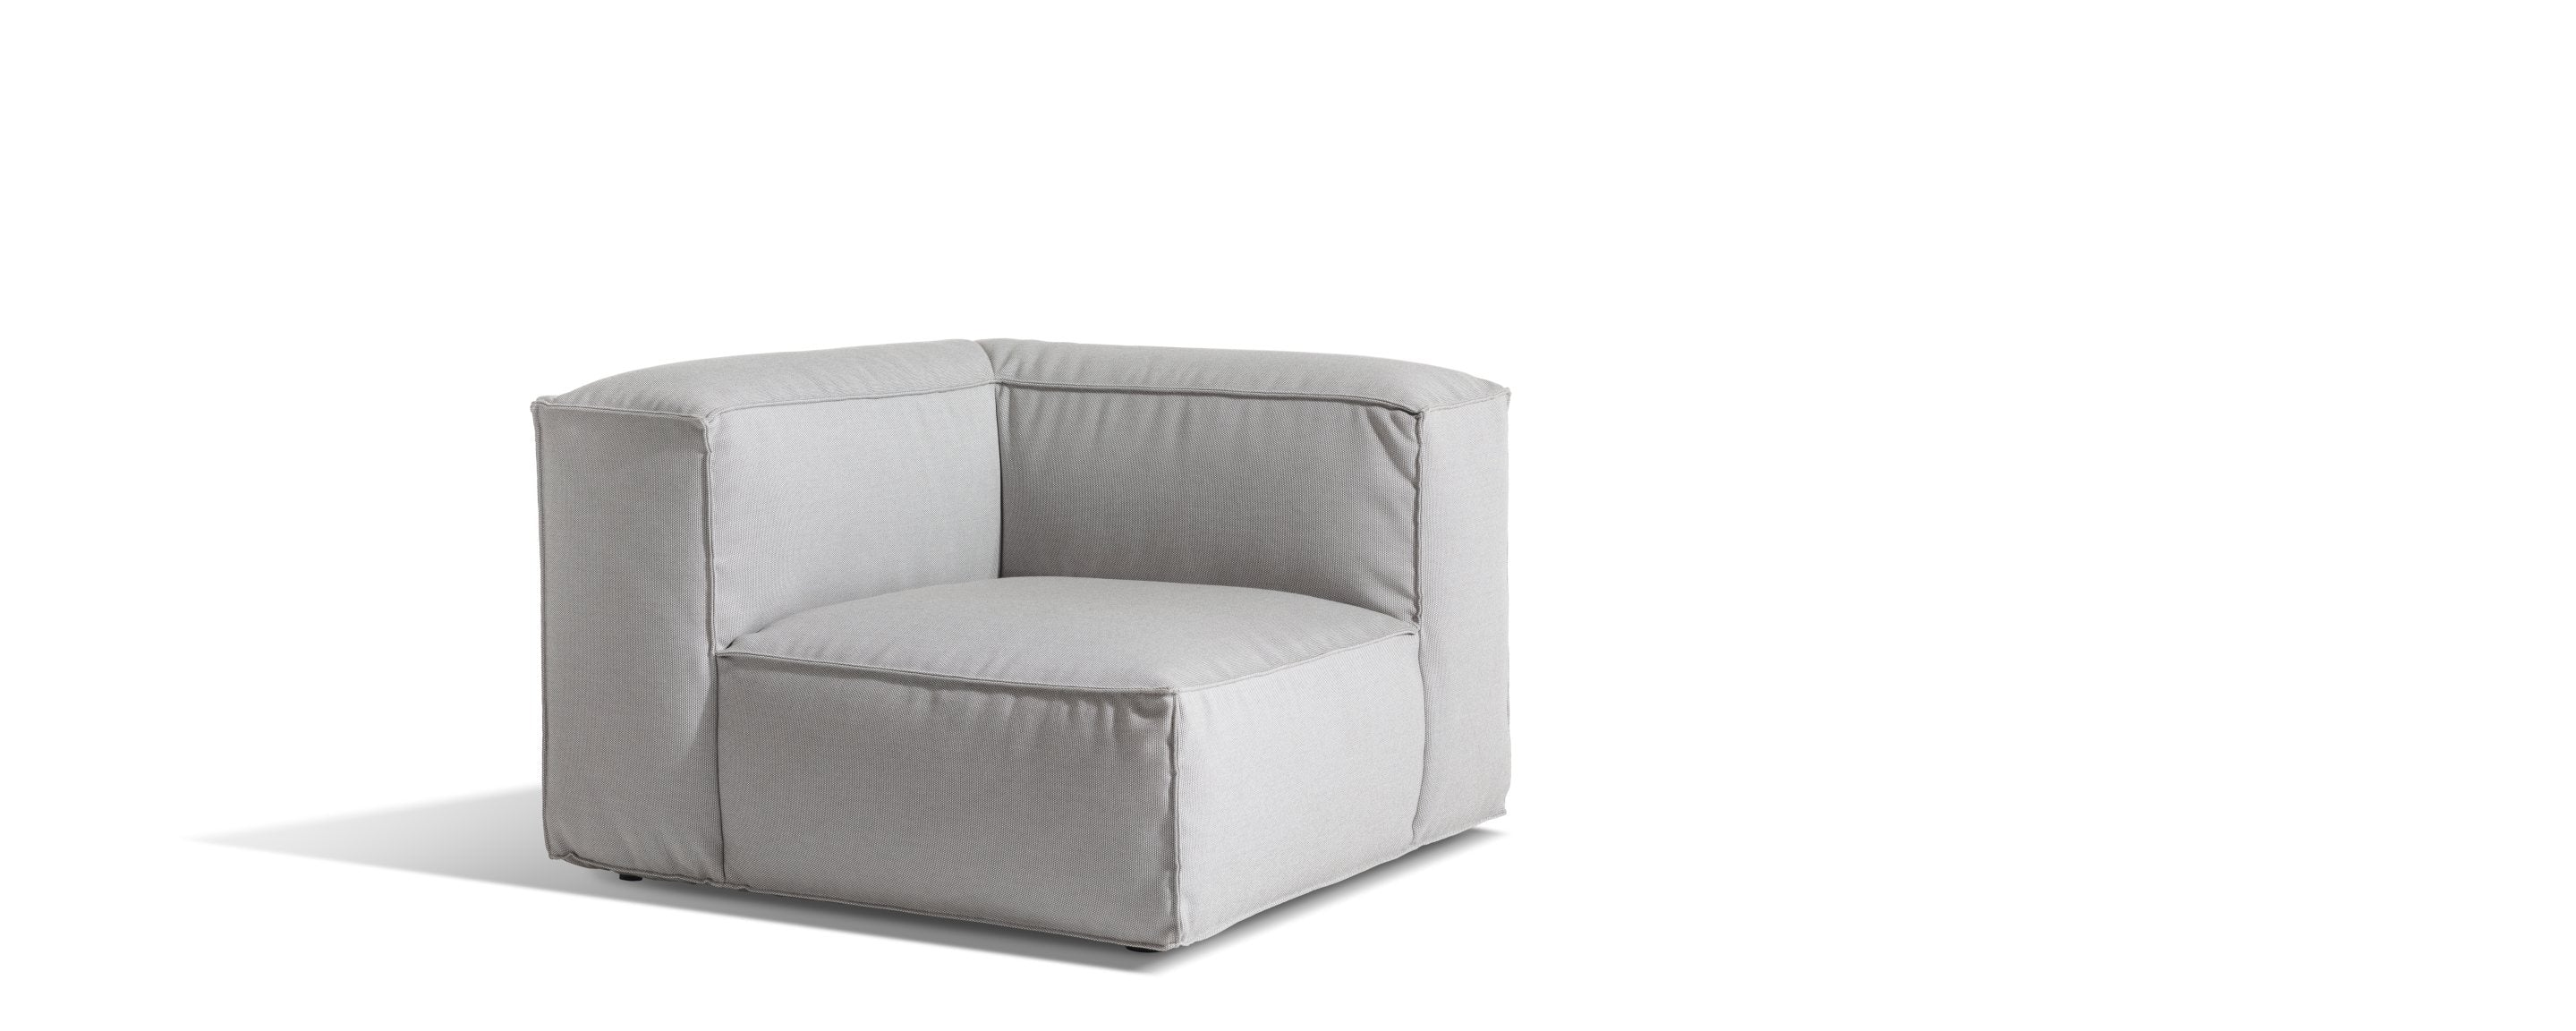 asker sectional sofa corner section